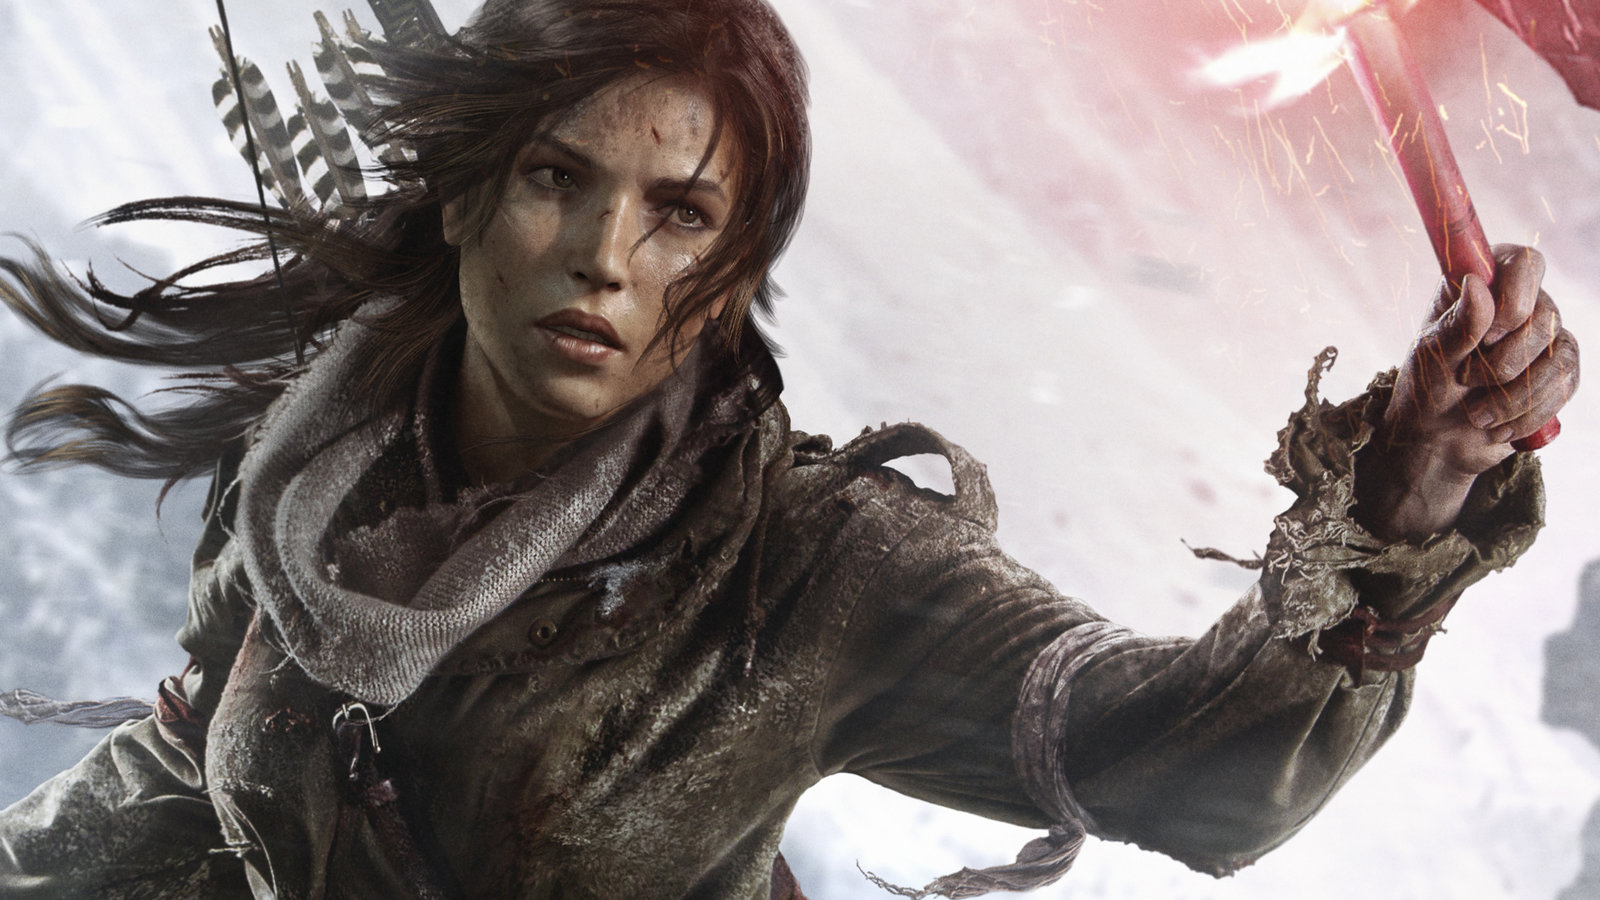 Free Download Rise Of The Tomb Raider By Vgwallpapers Watch